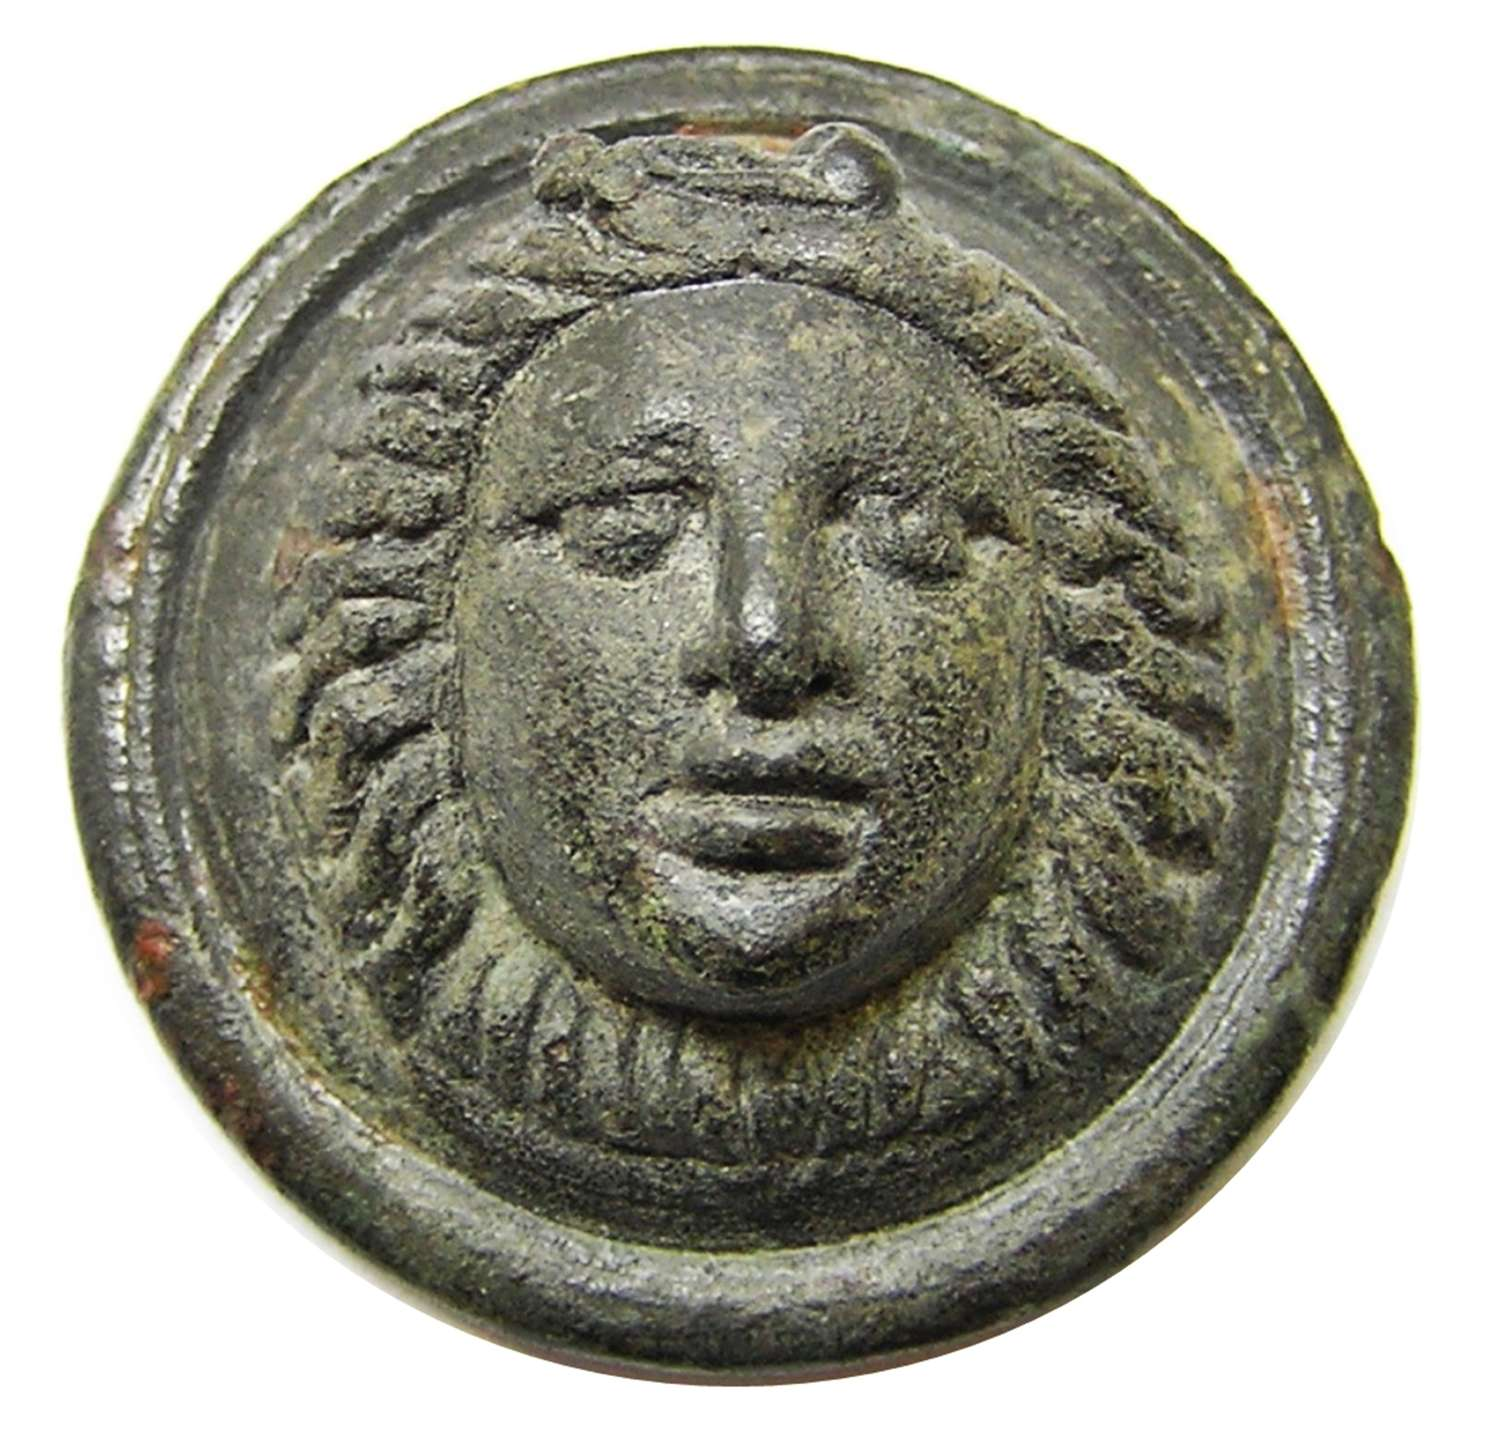 Ancient Roman military phalera gorgoneion facing bust of Medusa